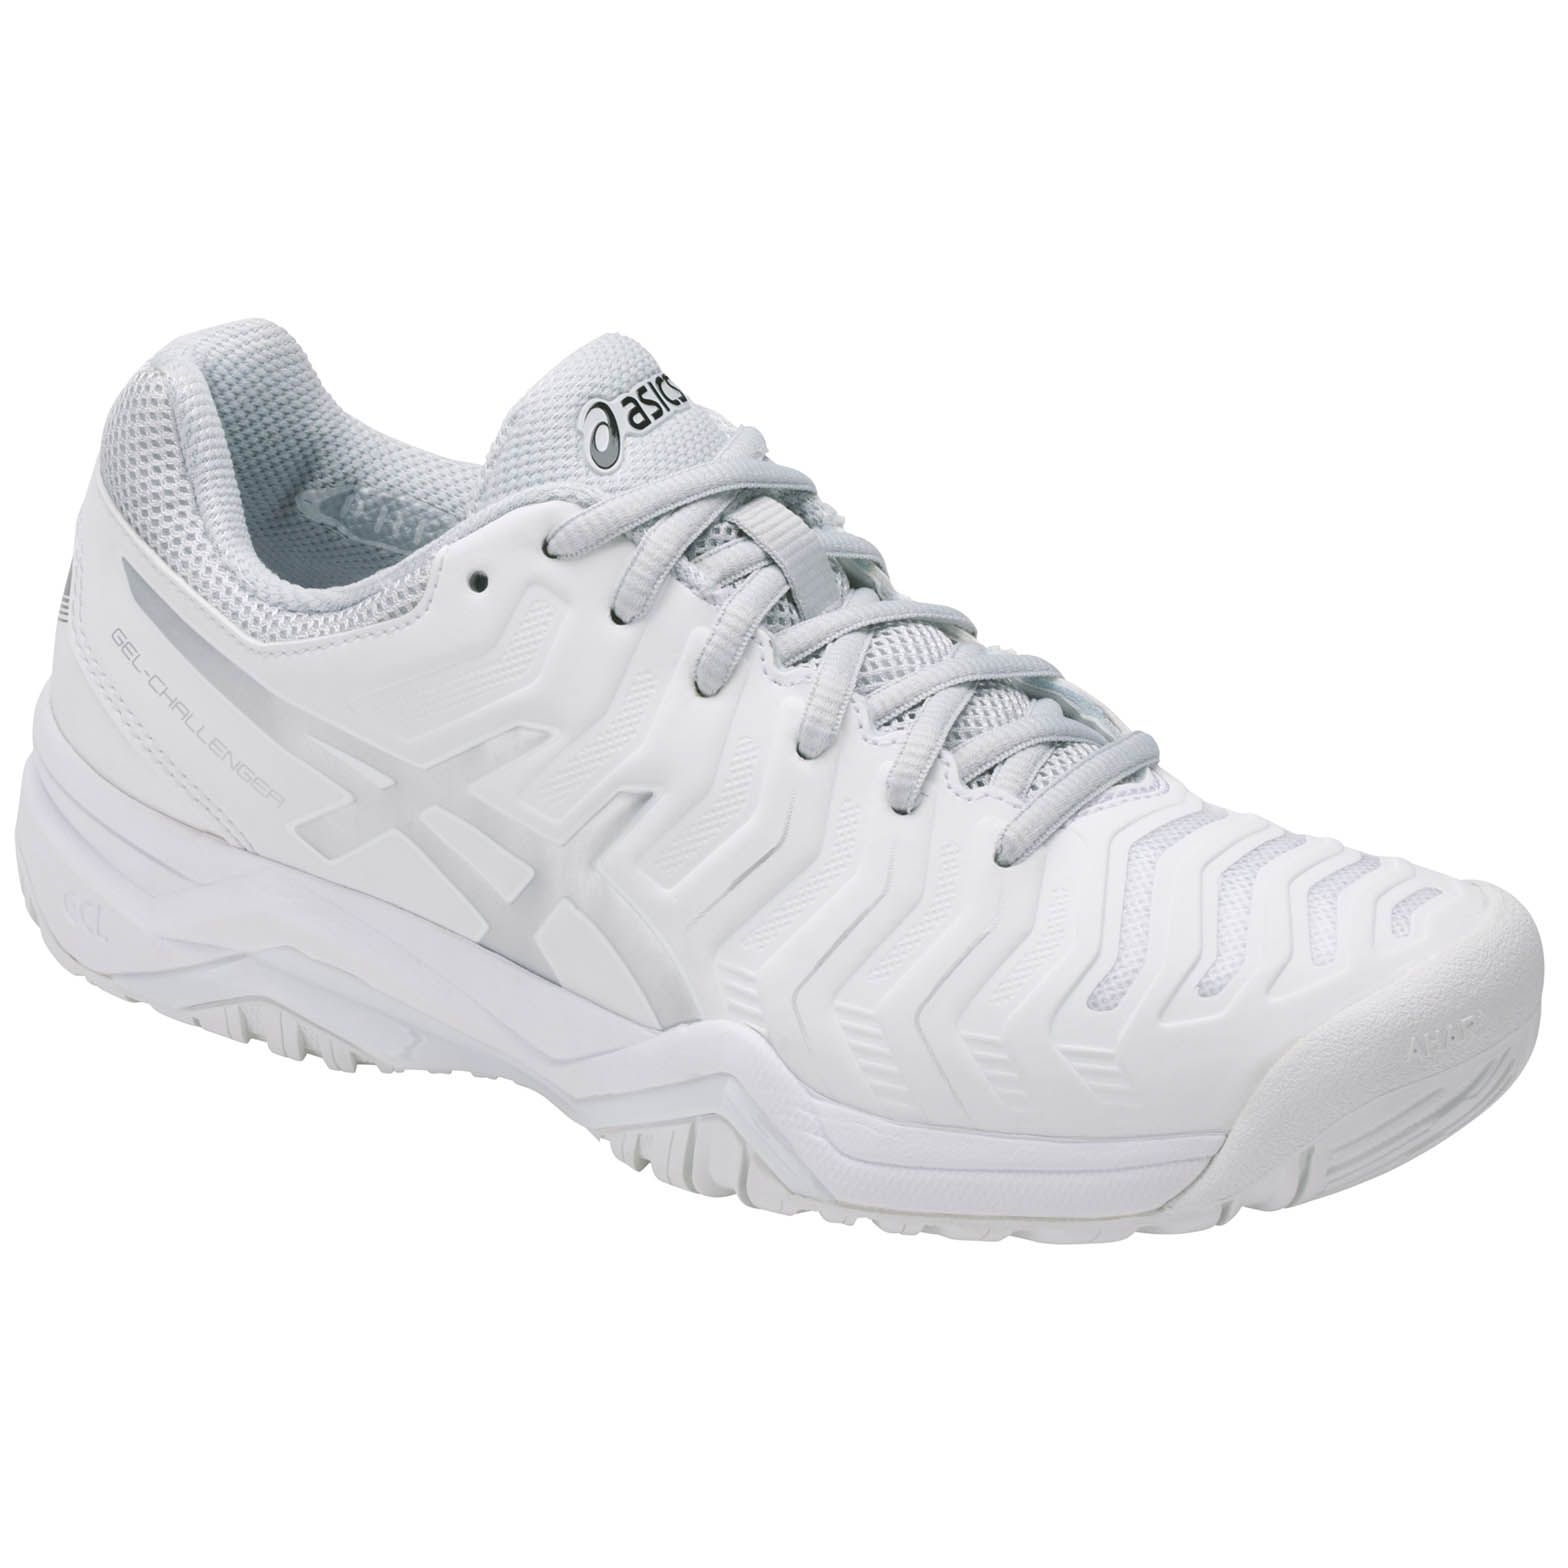 Challenger  Tennis Shoes Aw